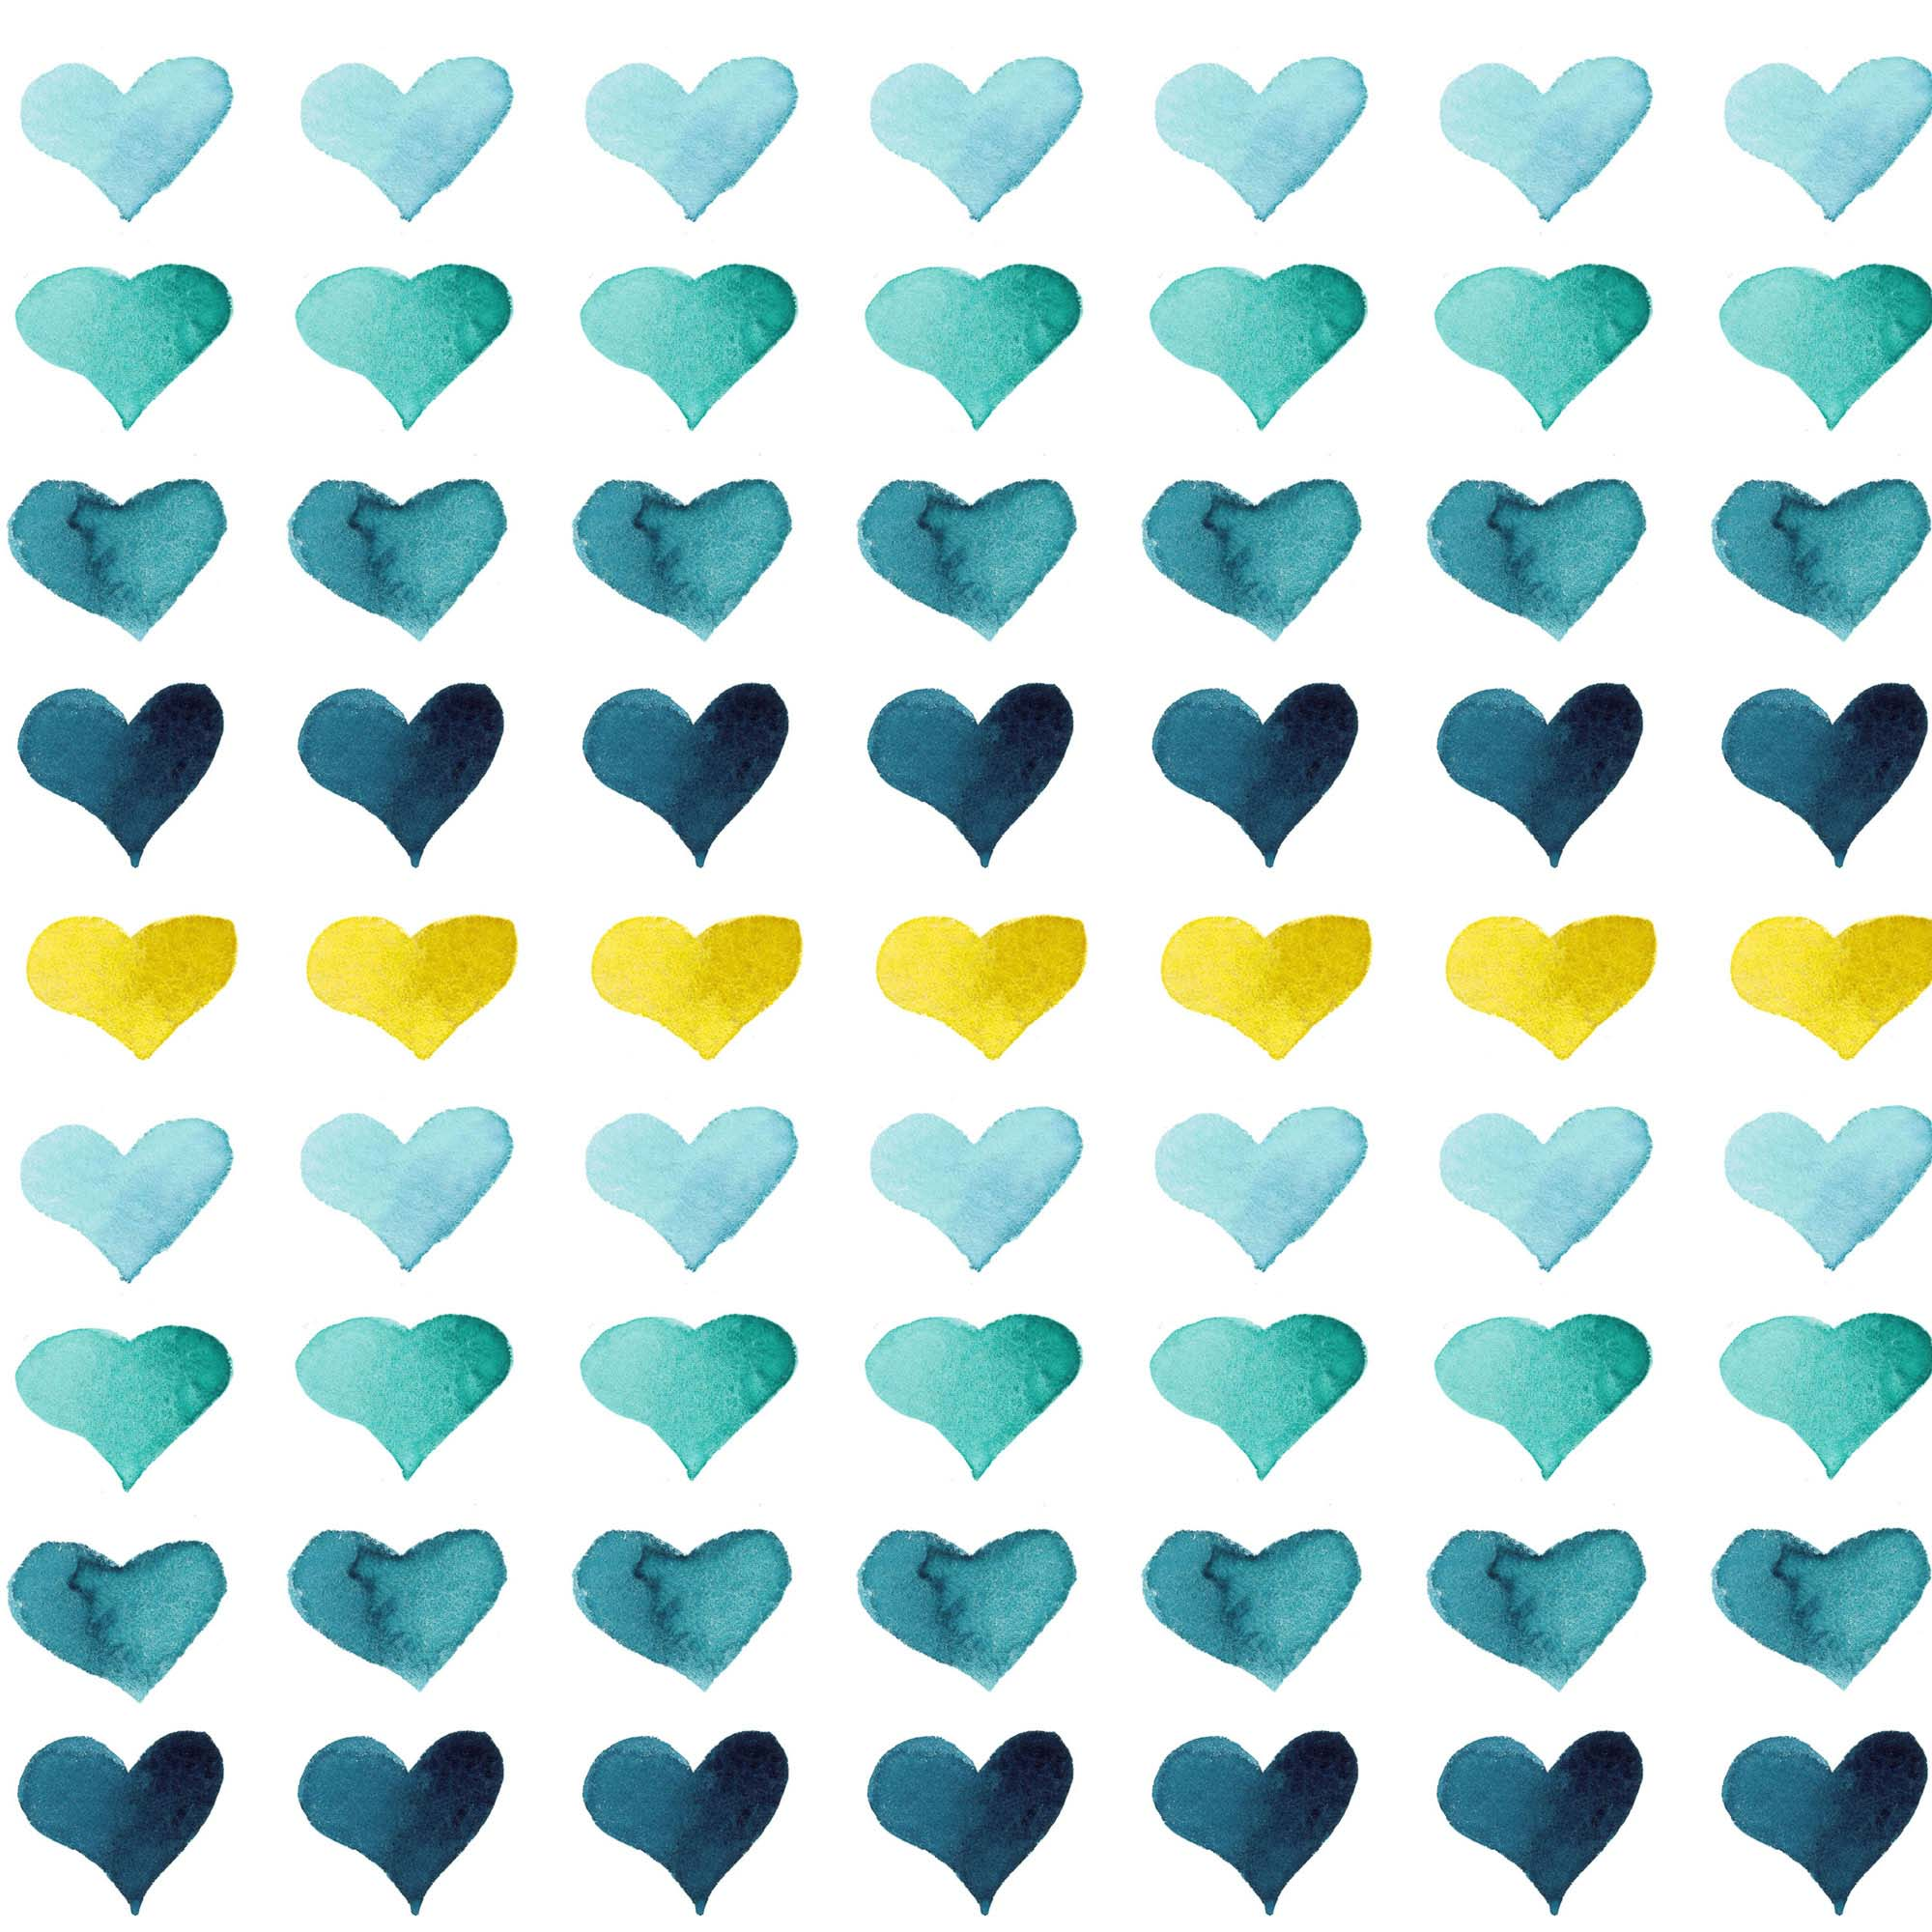 Hearts of the Sea blue & yellow watercolor heart print by Aliya Bora